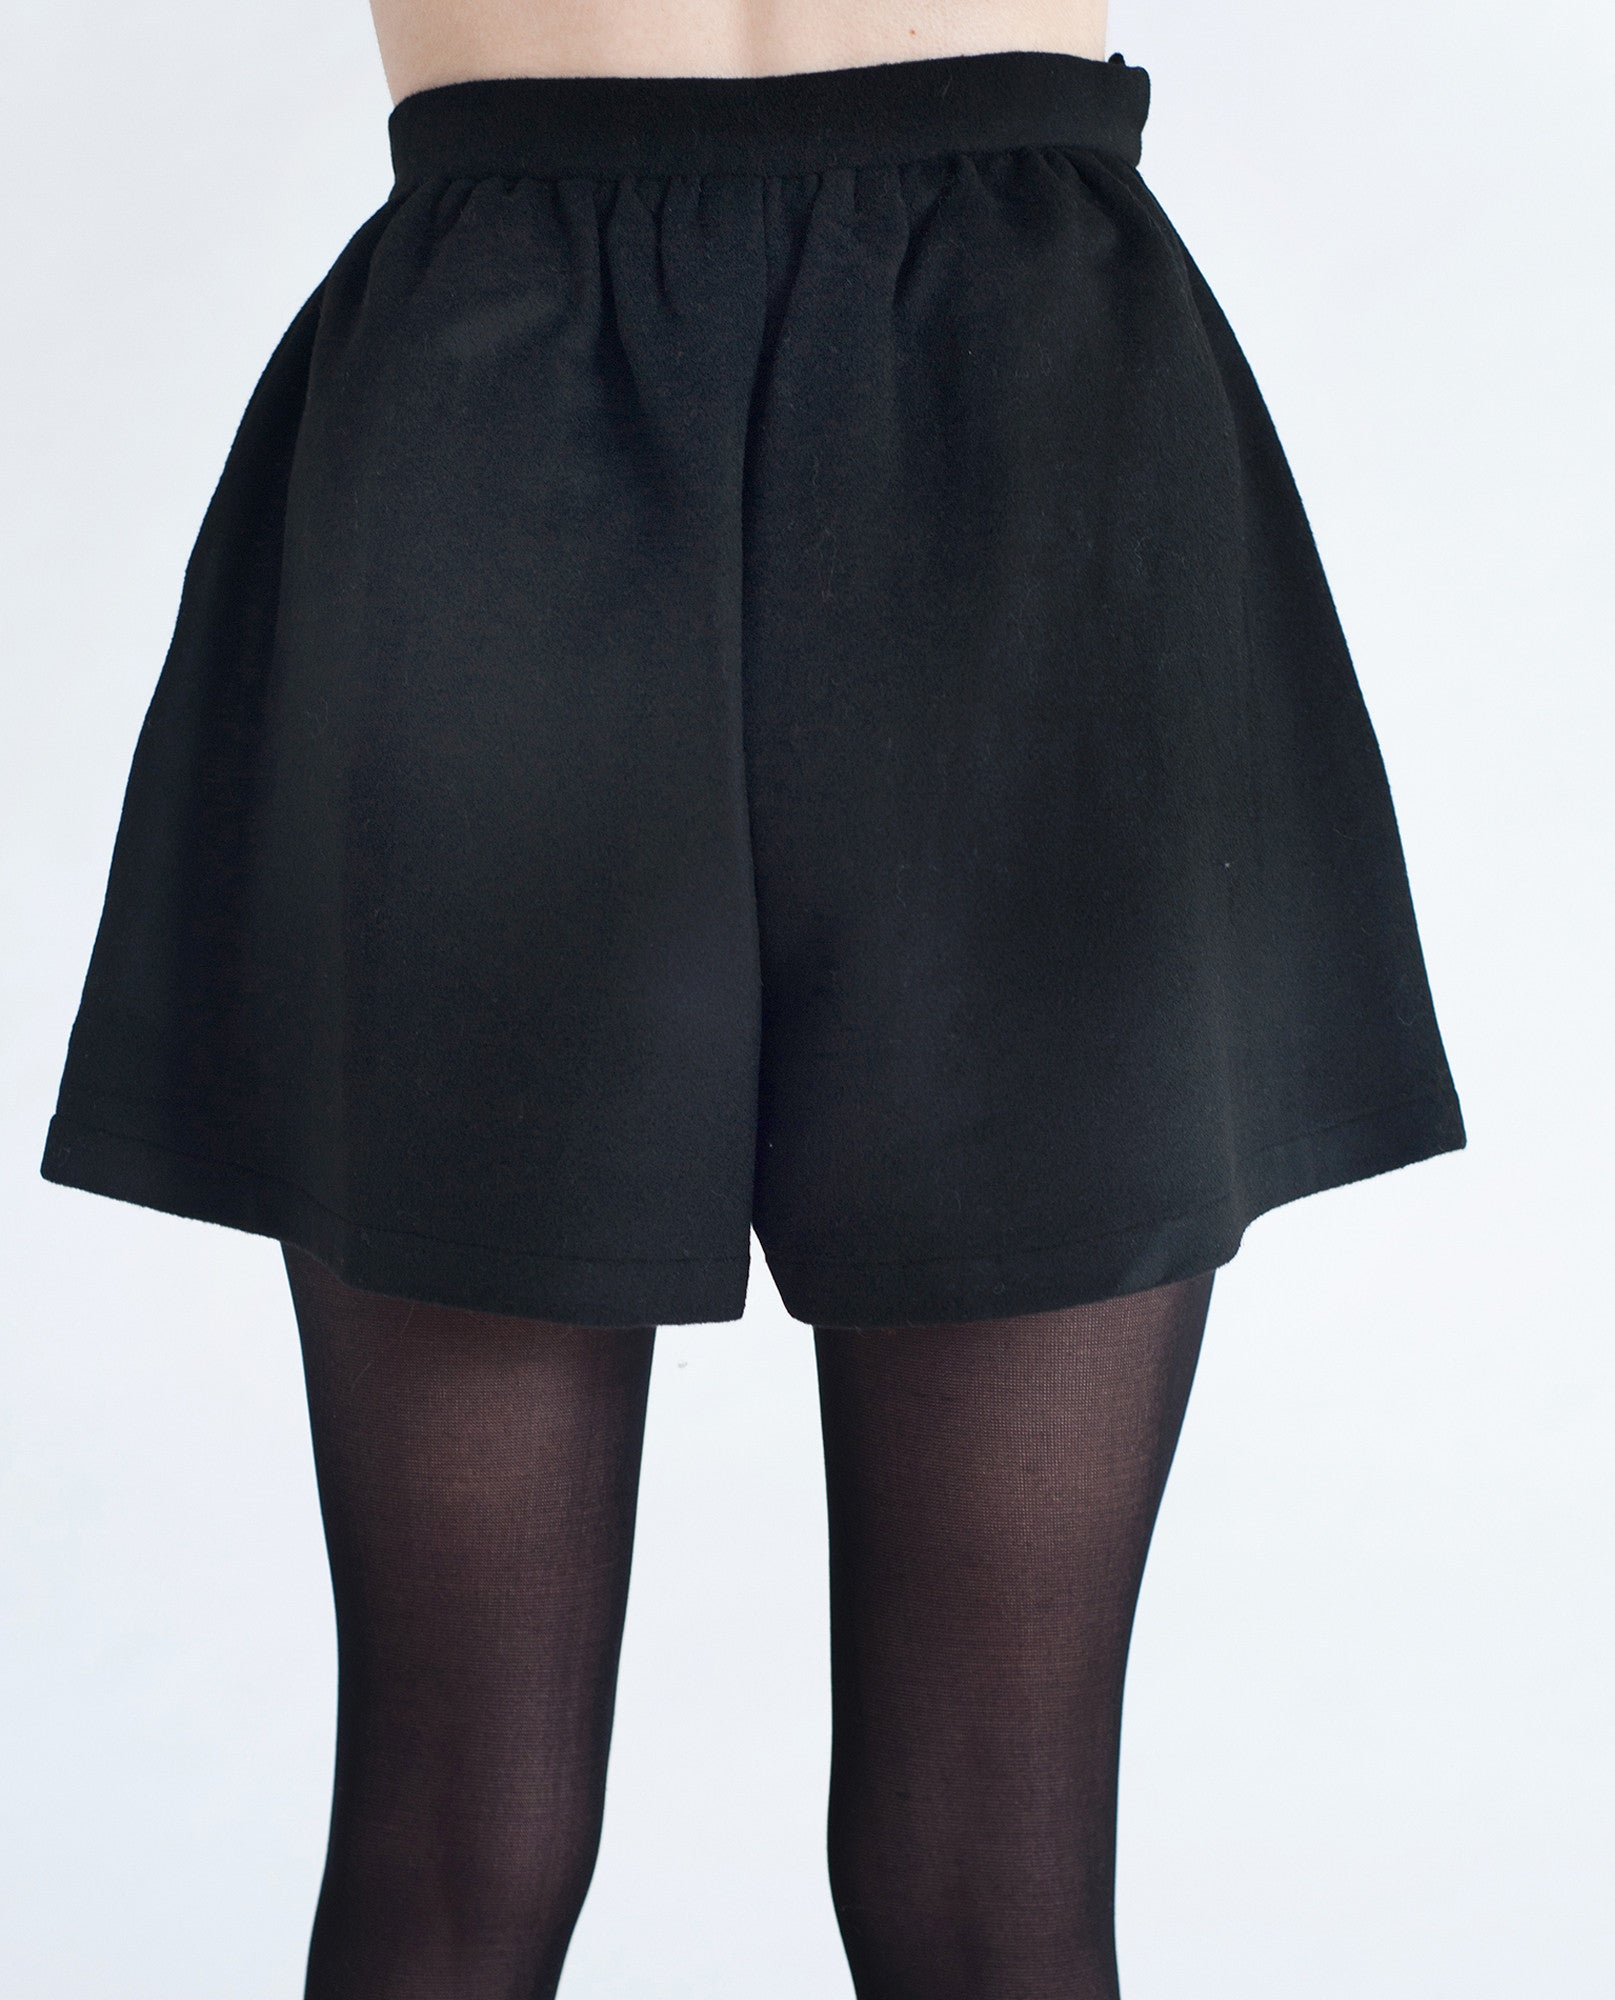 NATALIE Wool Wide Leg Shorts In Black